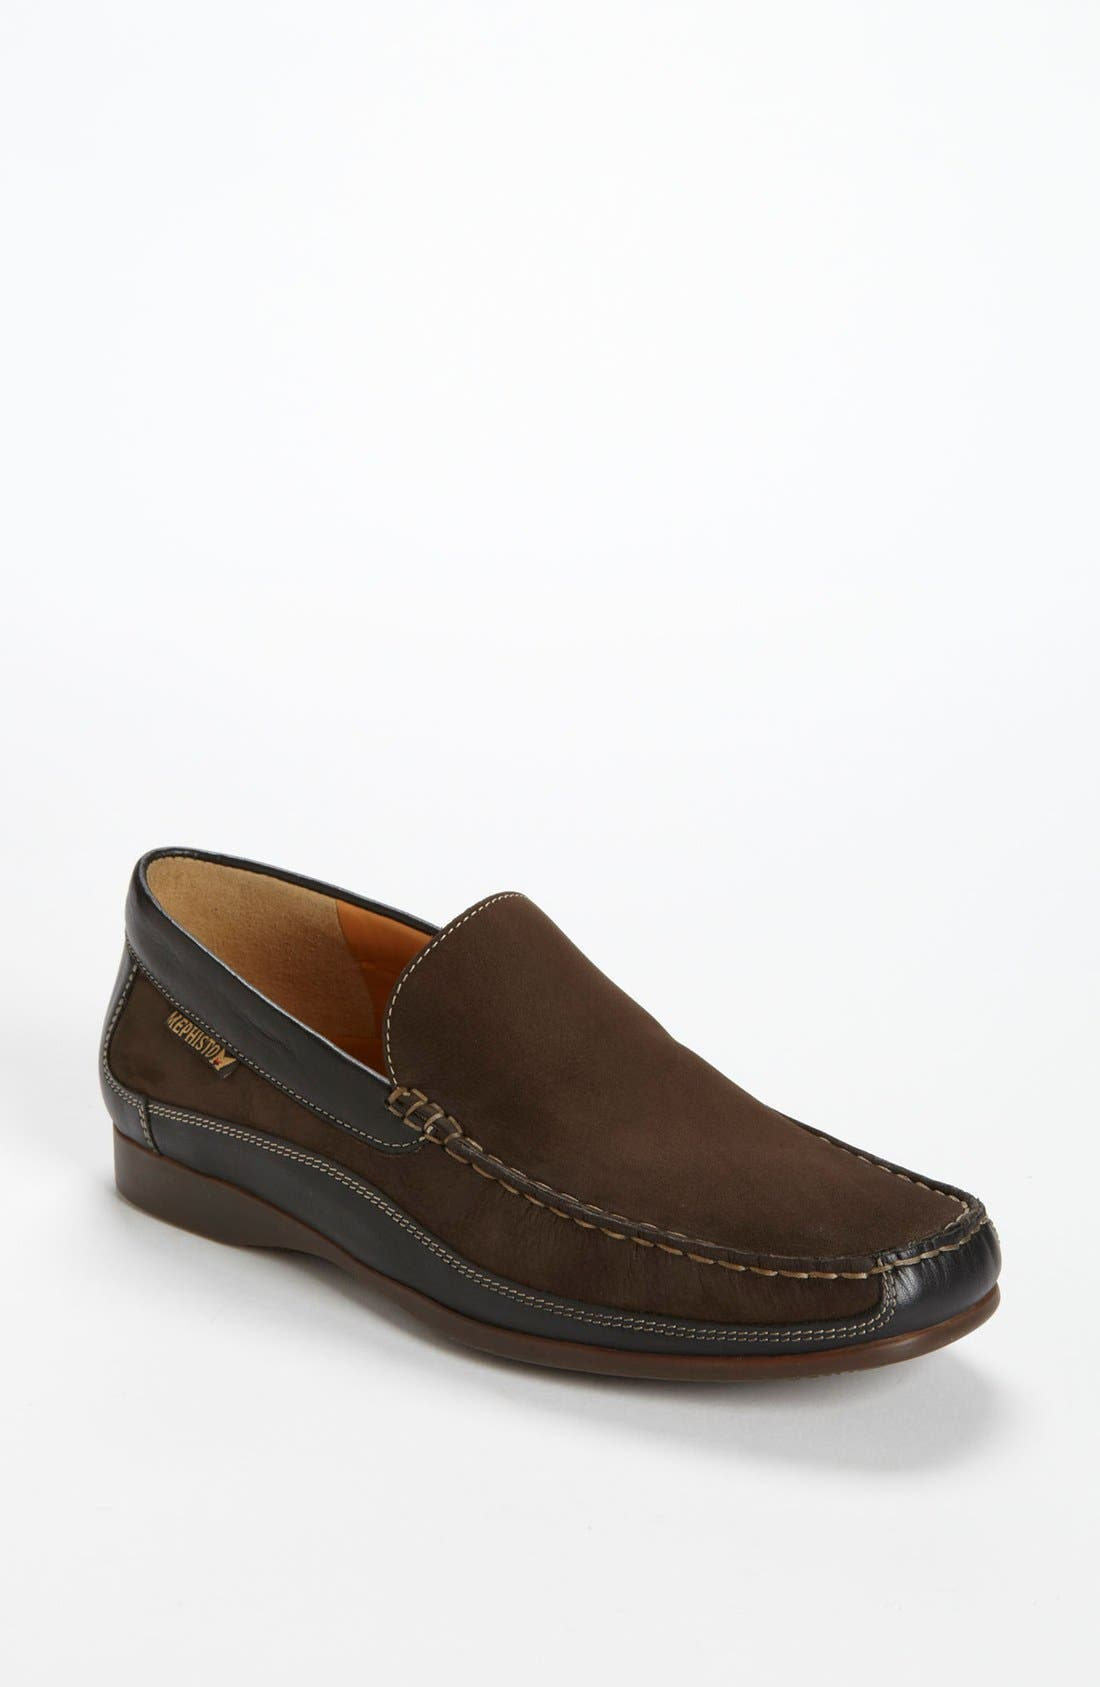 'Baduard' Loafer,                         Main,                         color, Brown Nubuck/ Brown Suede